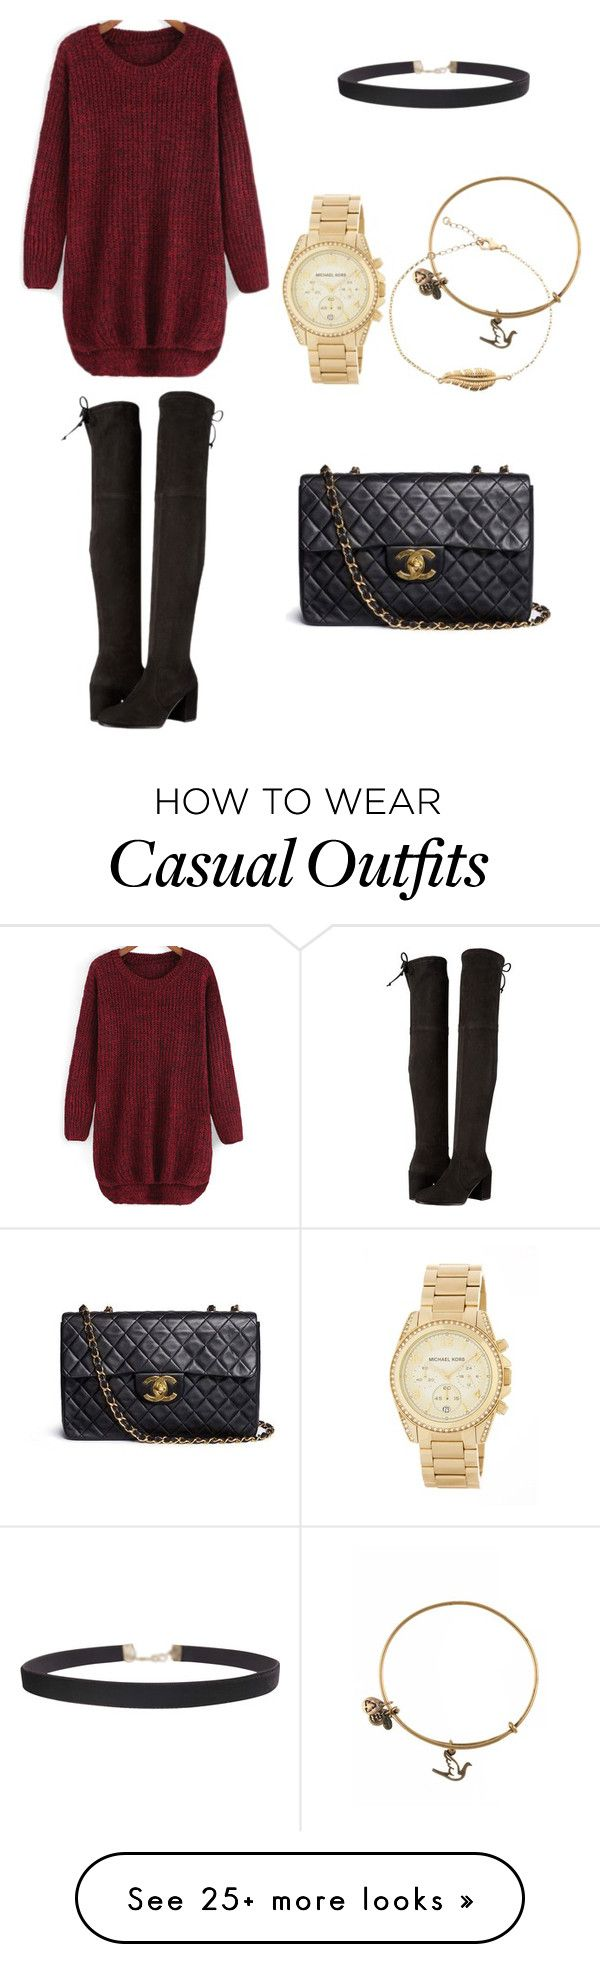 """""""Casual slay"""" by eloramcc on Polyvore featuring Stuart Weitzman, MICHAEL Michael Kors, Humble Chic, Alex and Ani and Chanel"""